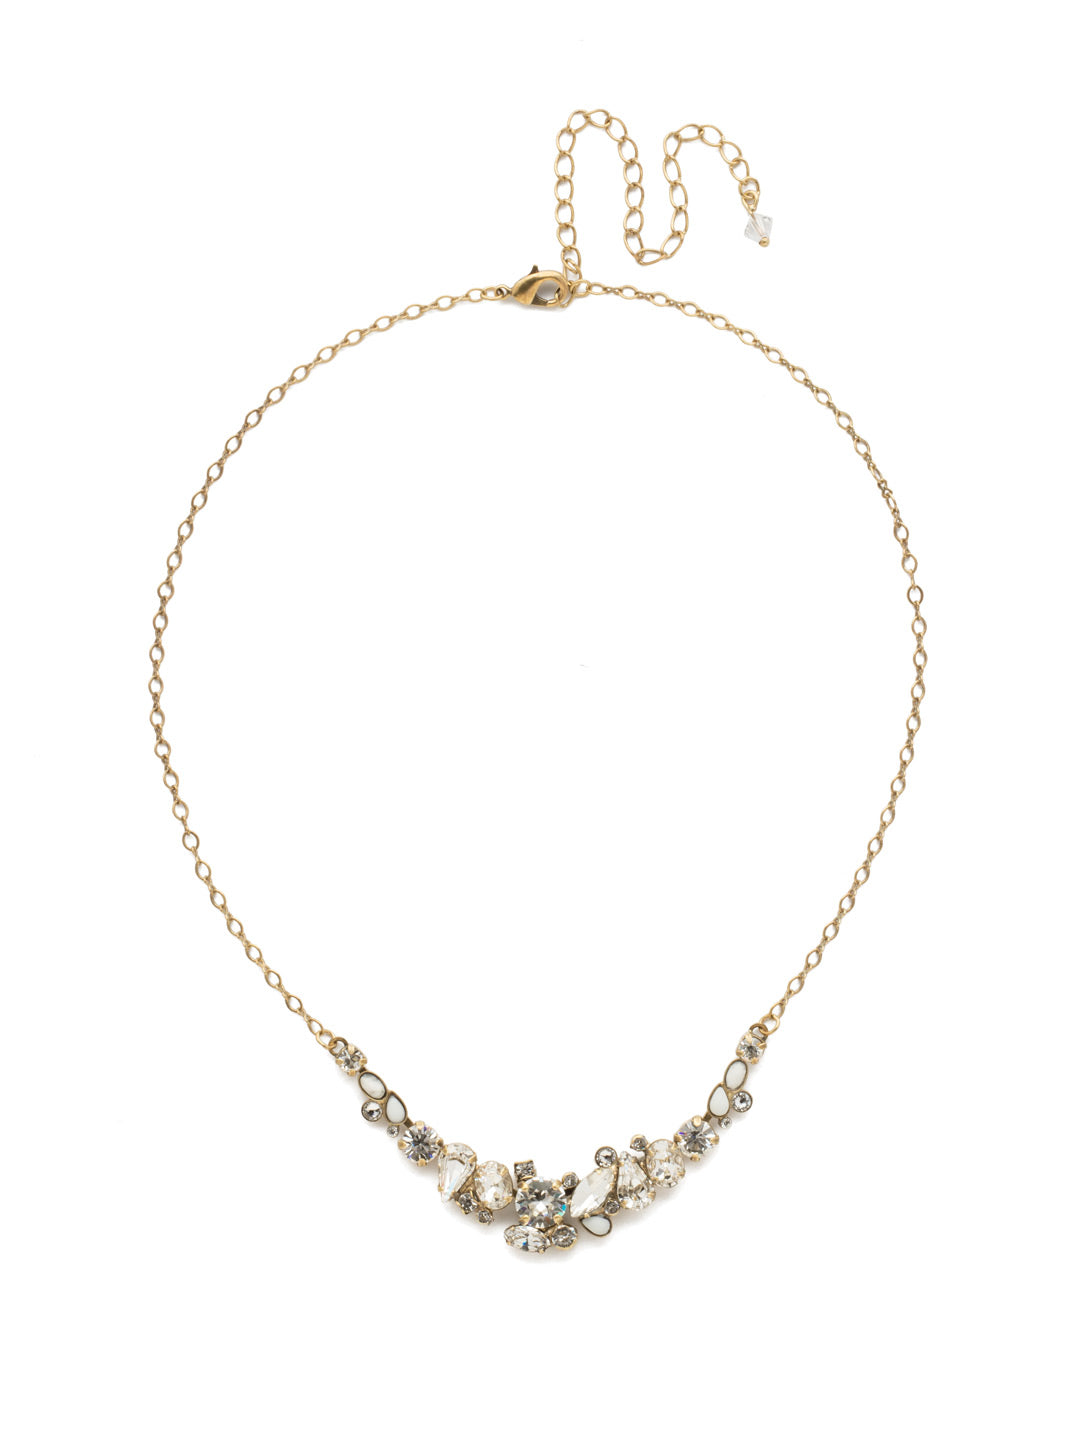 Asymmetric Cluster Necklace - NDK16AGCRY